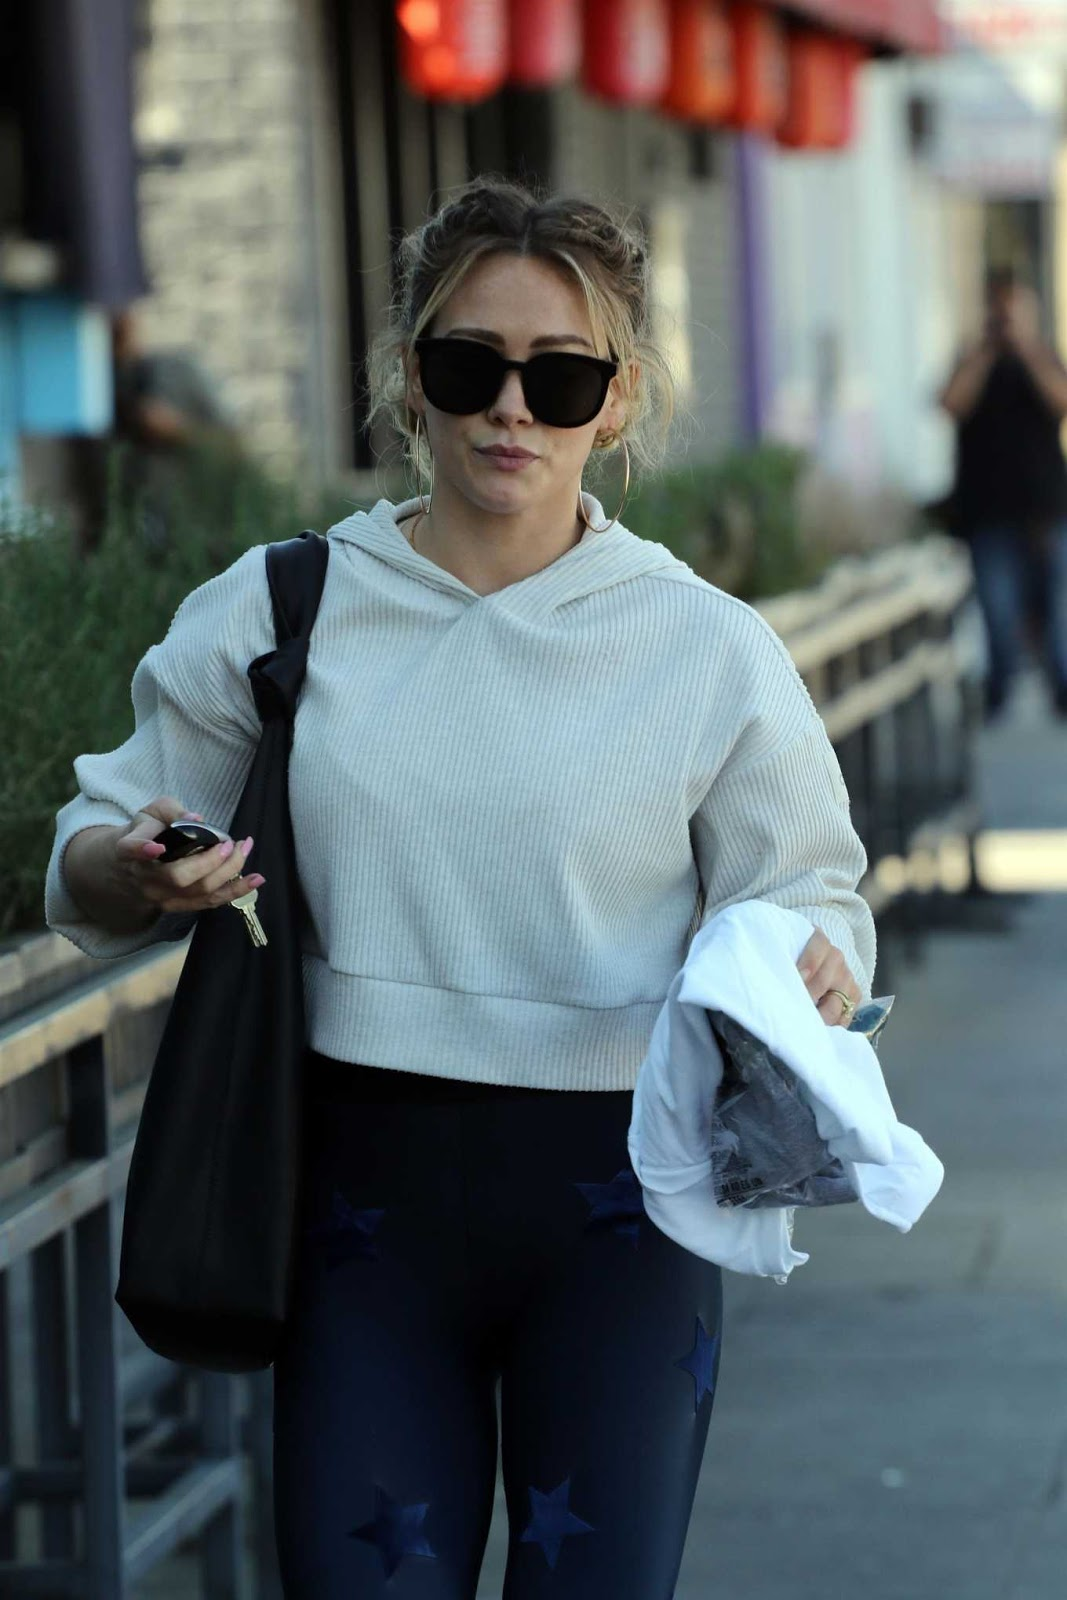 Hilary Duff : Arrives at the shop with a new hairstyle